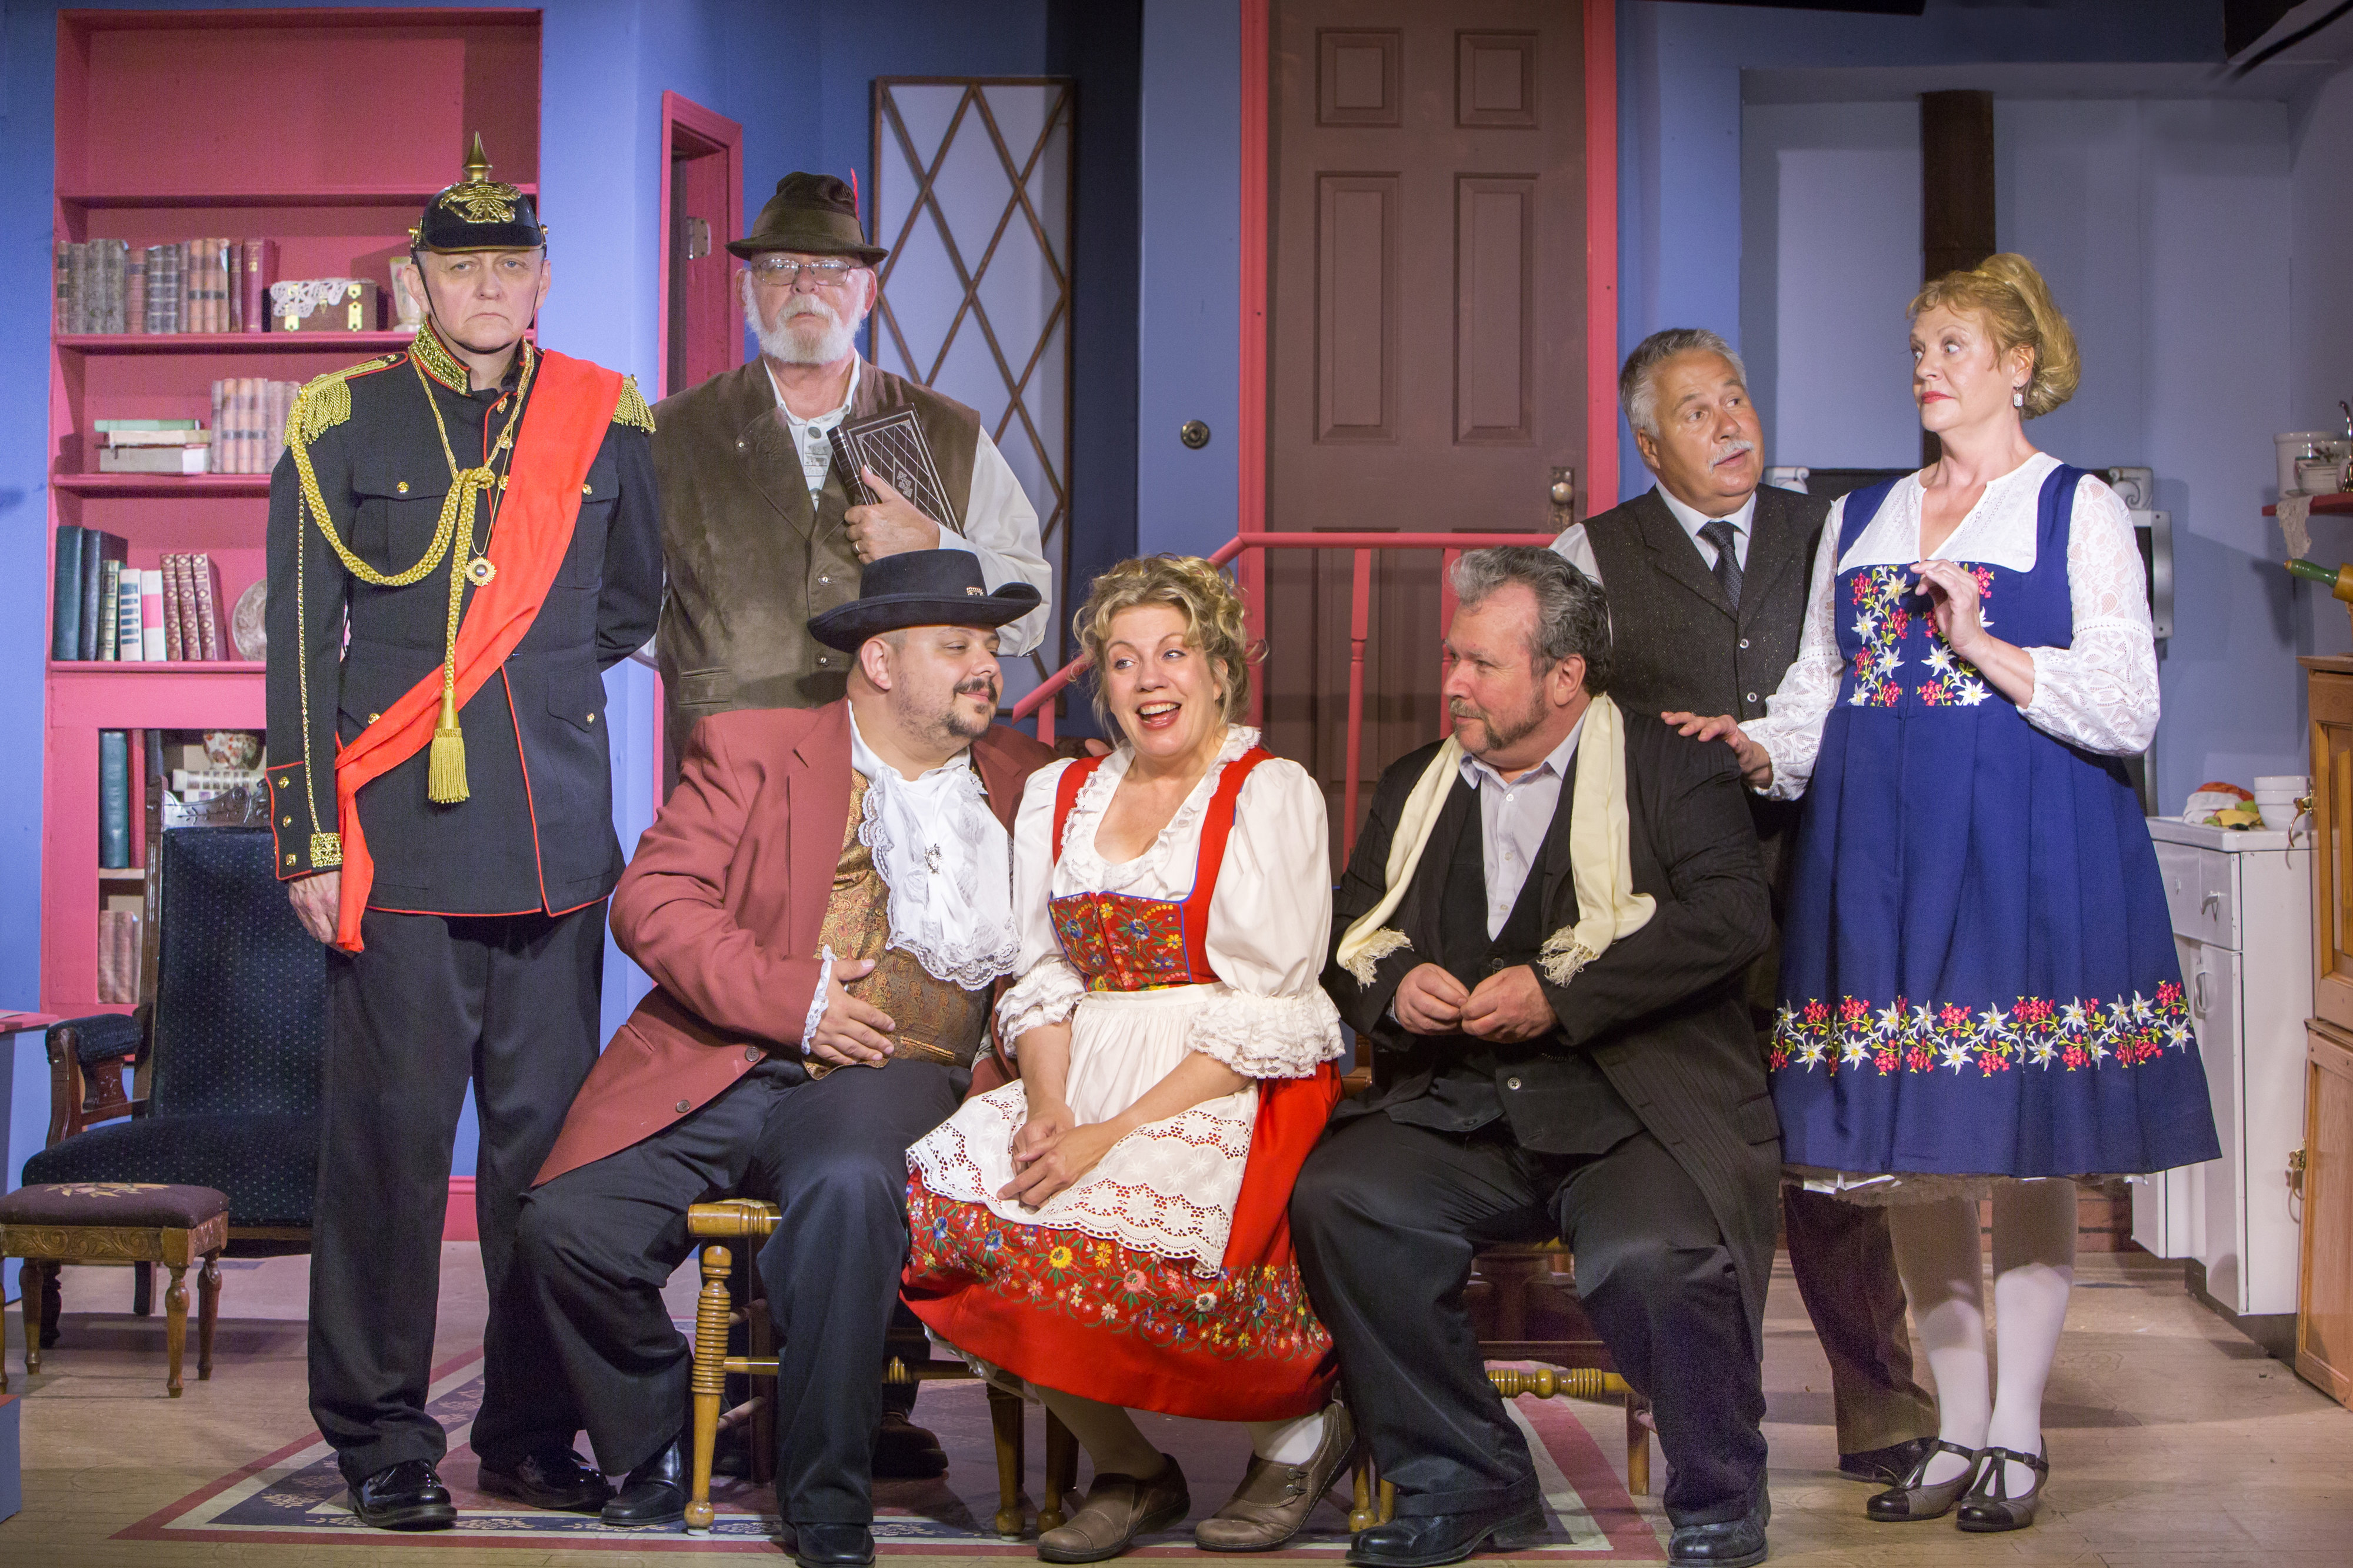 From left are Clarkston Village Players Jim Pike, Dwaine Estes, Scott Talas, Wendy Hedstrom, Brian Taylor, Steve Sanger, and Carol Taylor. Photo courtesy of Emily J. Dowd